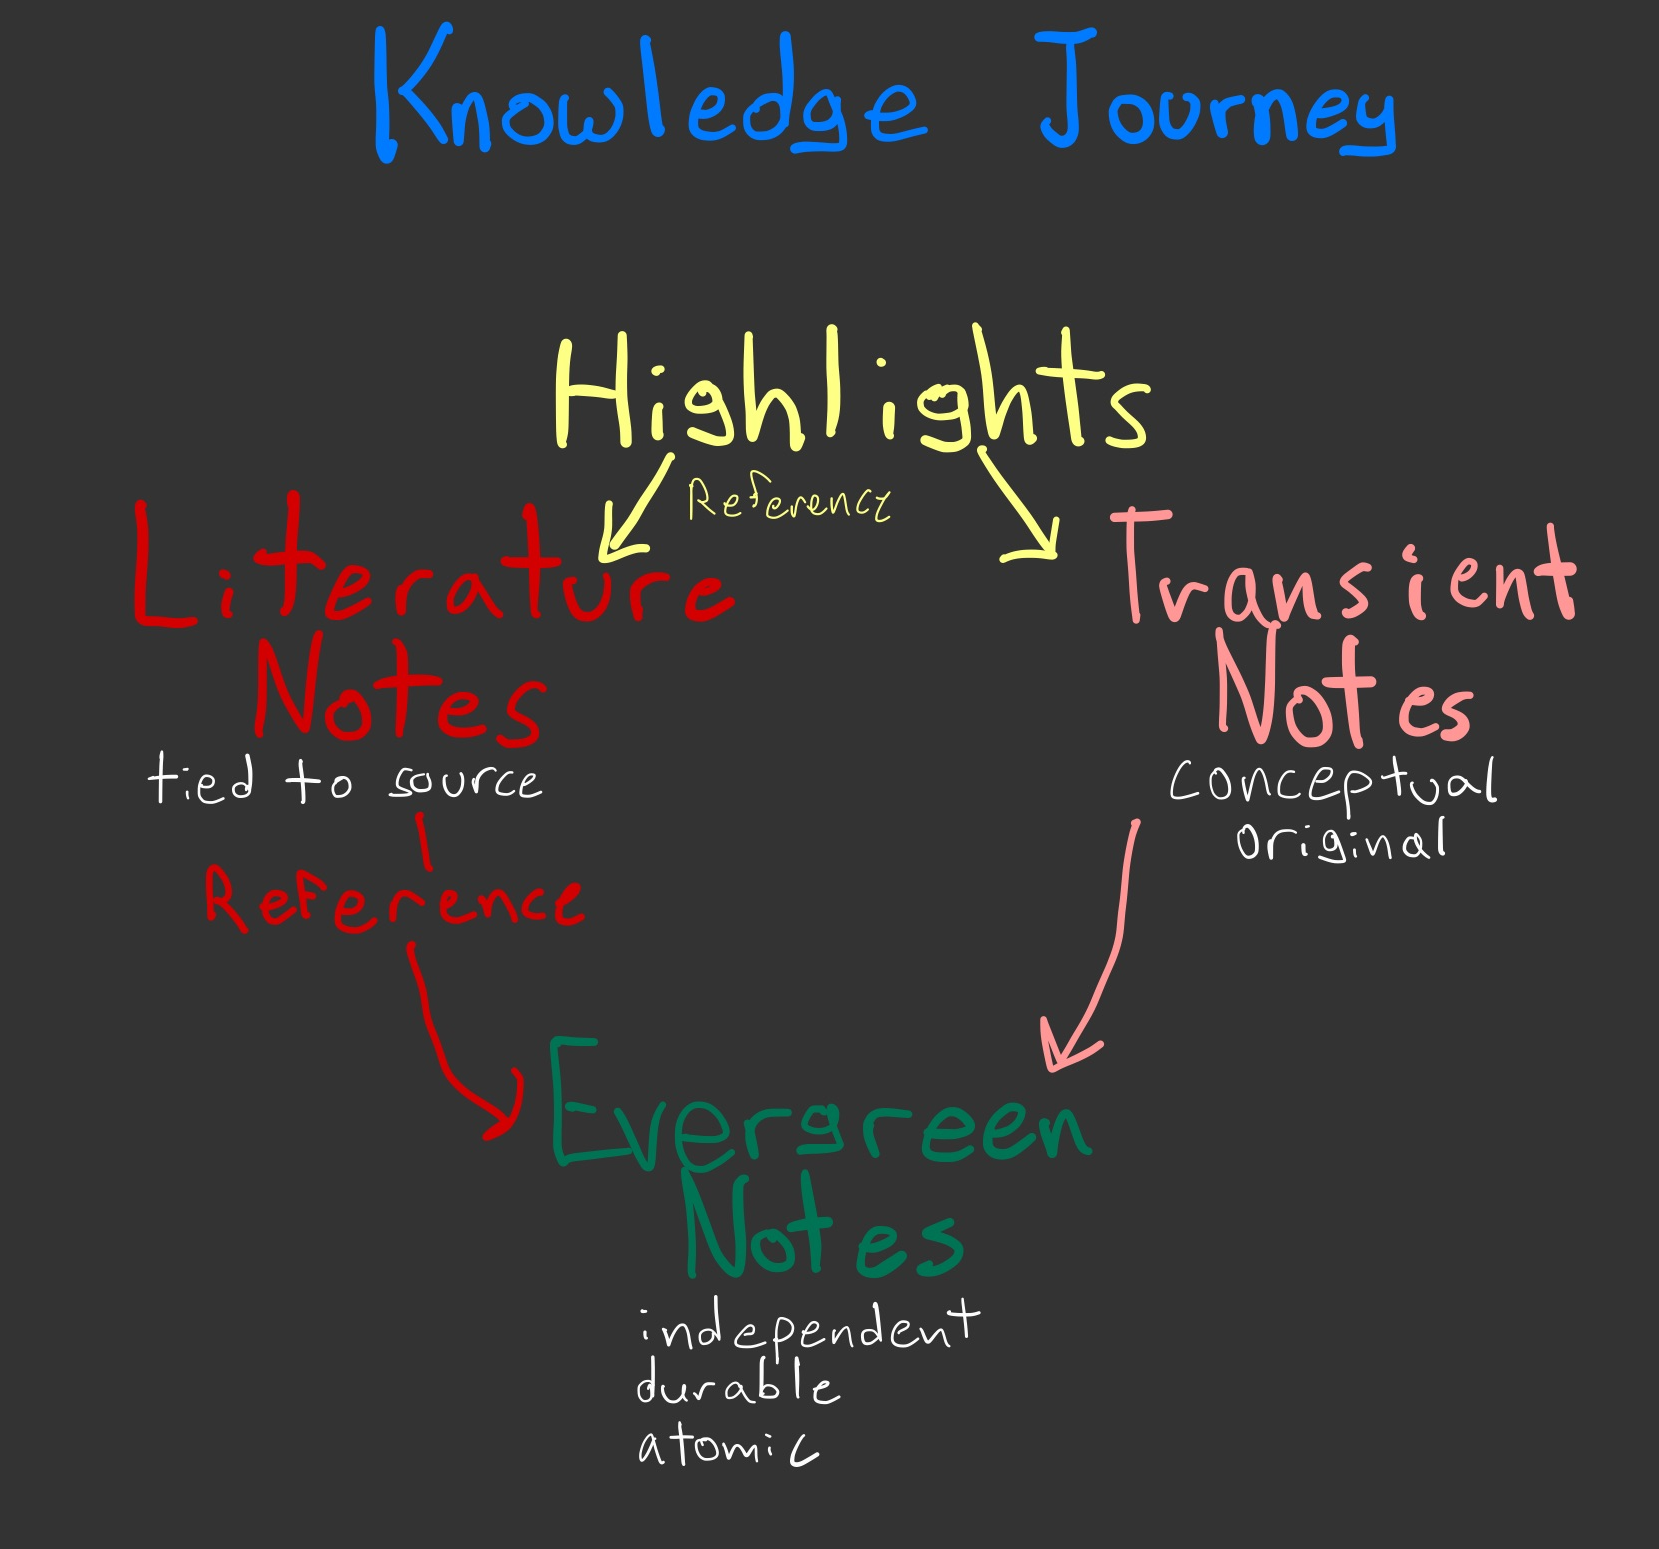 Information starts as highlights, which are the source for literature notes and transient notes, which come together to represent knowledge in evergreen notes.